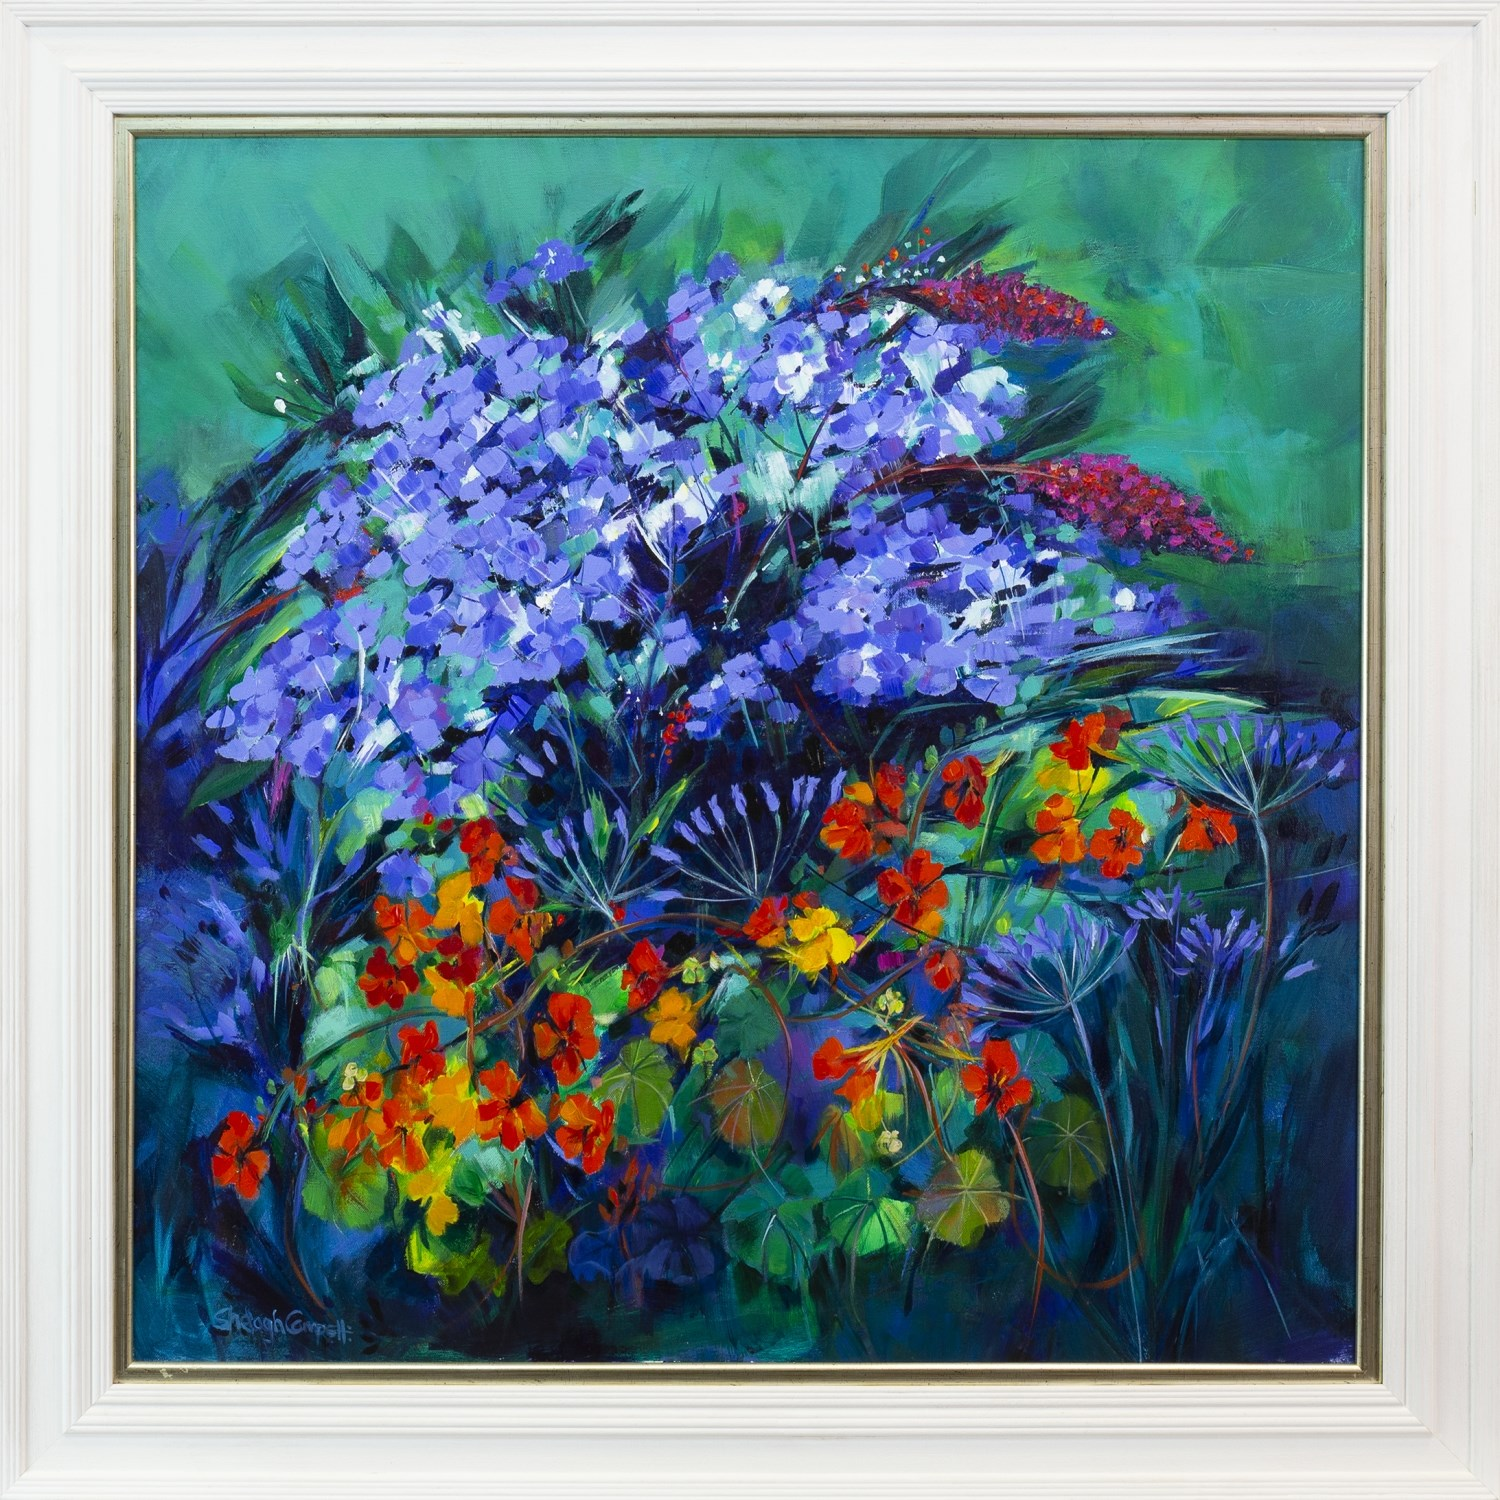 Lot 113 - BLOOMING LOVELY, AN ACRYLIC ON CANVAS BY SHELAGH CAMPBELL